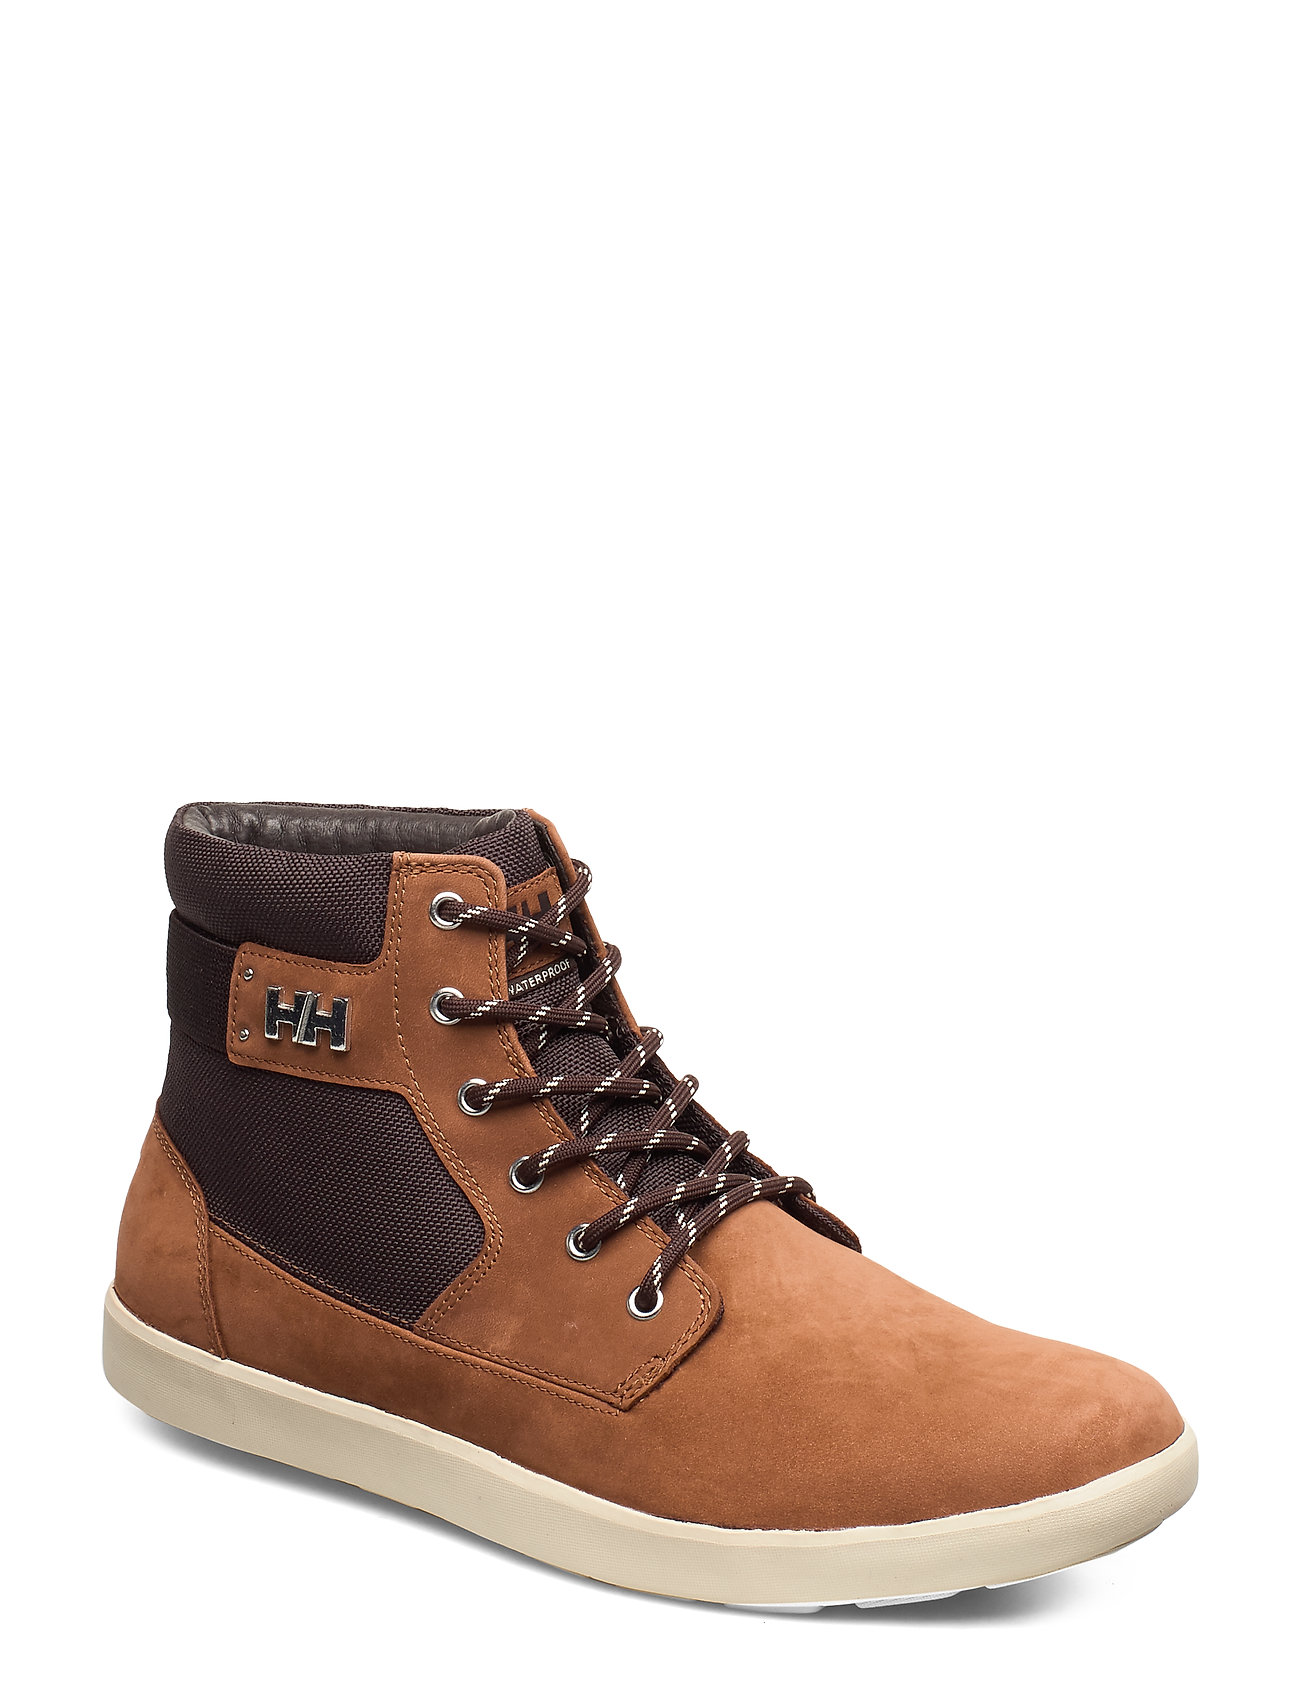 Helly Hansen STOCKHOLM 2 - WHISKEY / COFFEE BEAN / NA